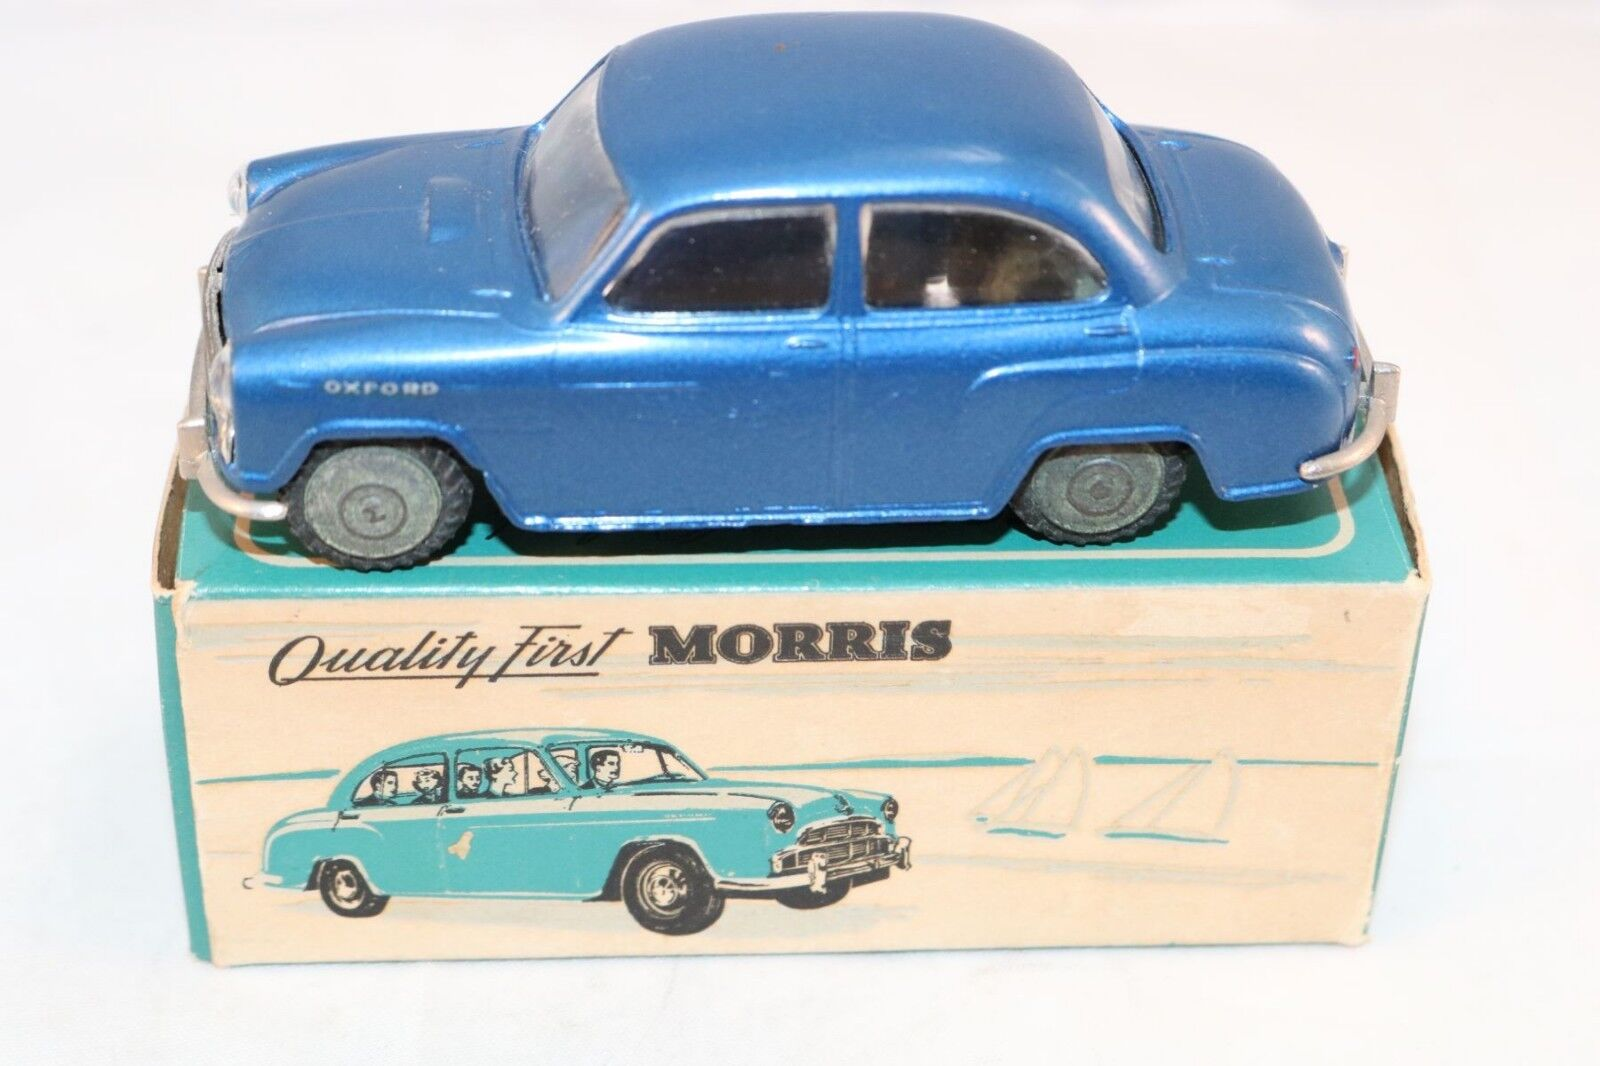 Tekno Denmark 719 Morris Oxford metallic bleu 99.9% mint in box Superb a beauty